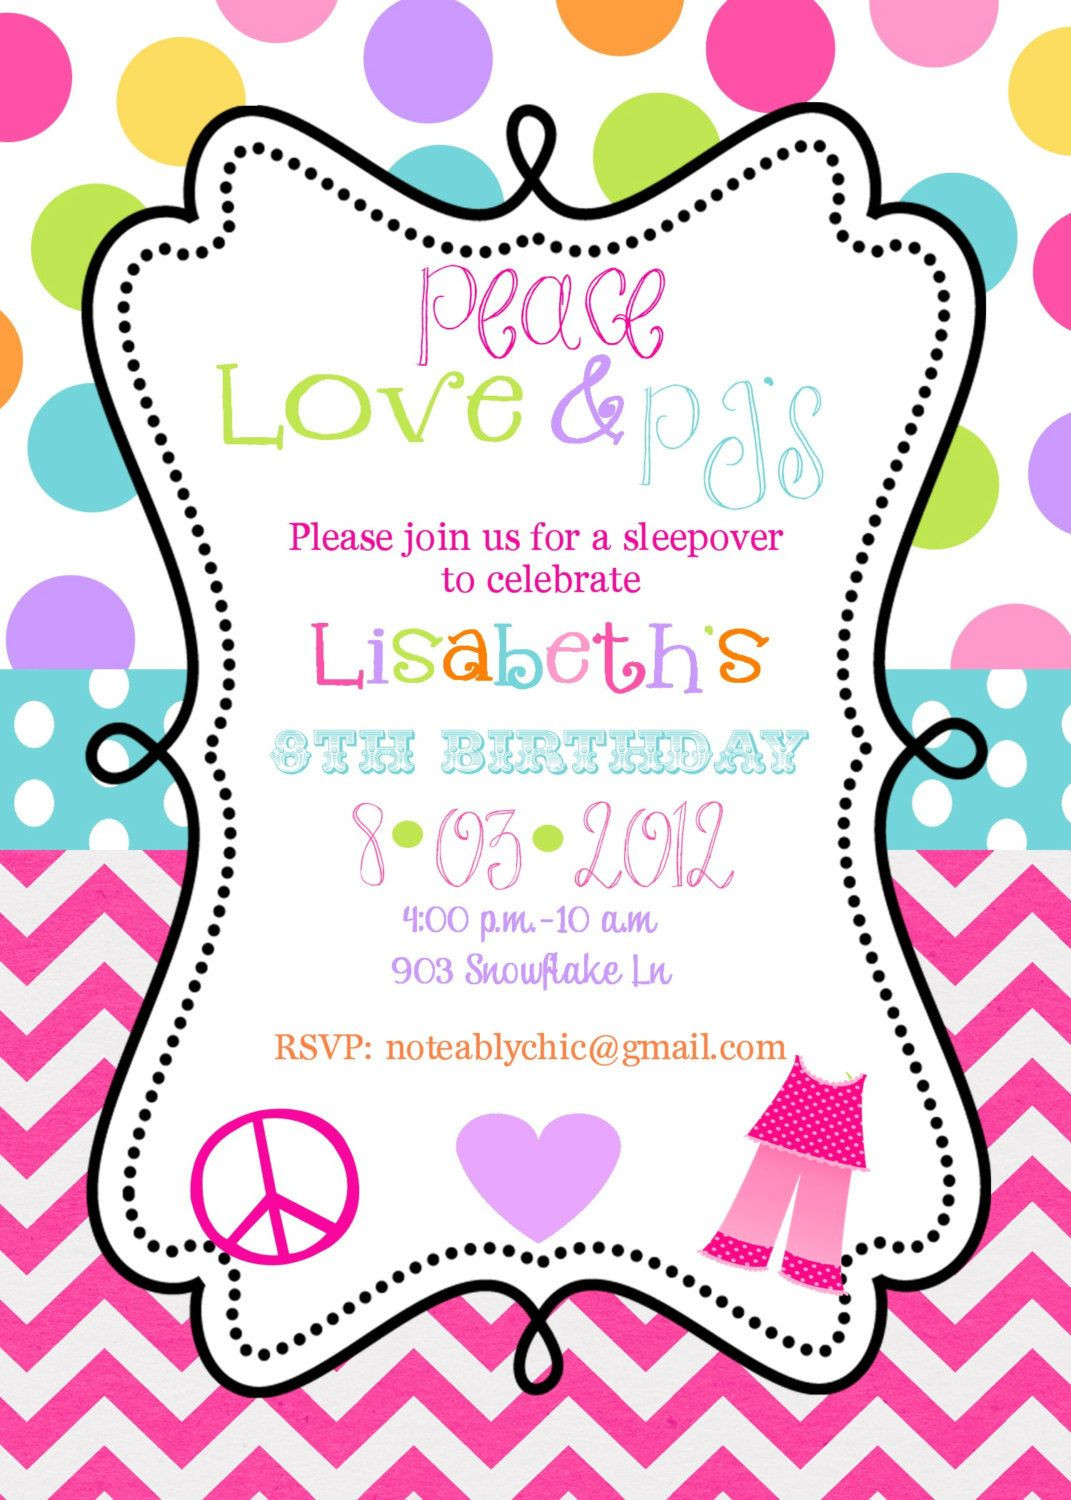 Best ideas about Birthday Party Invitation Template . Save or Pin Free Birthday Invitations Templates Now.